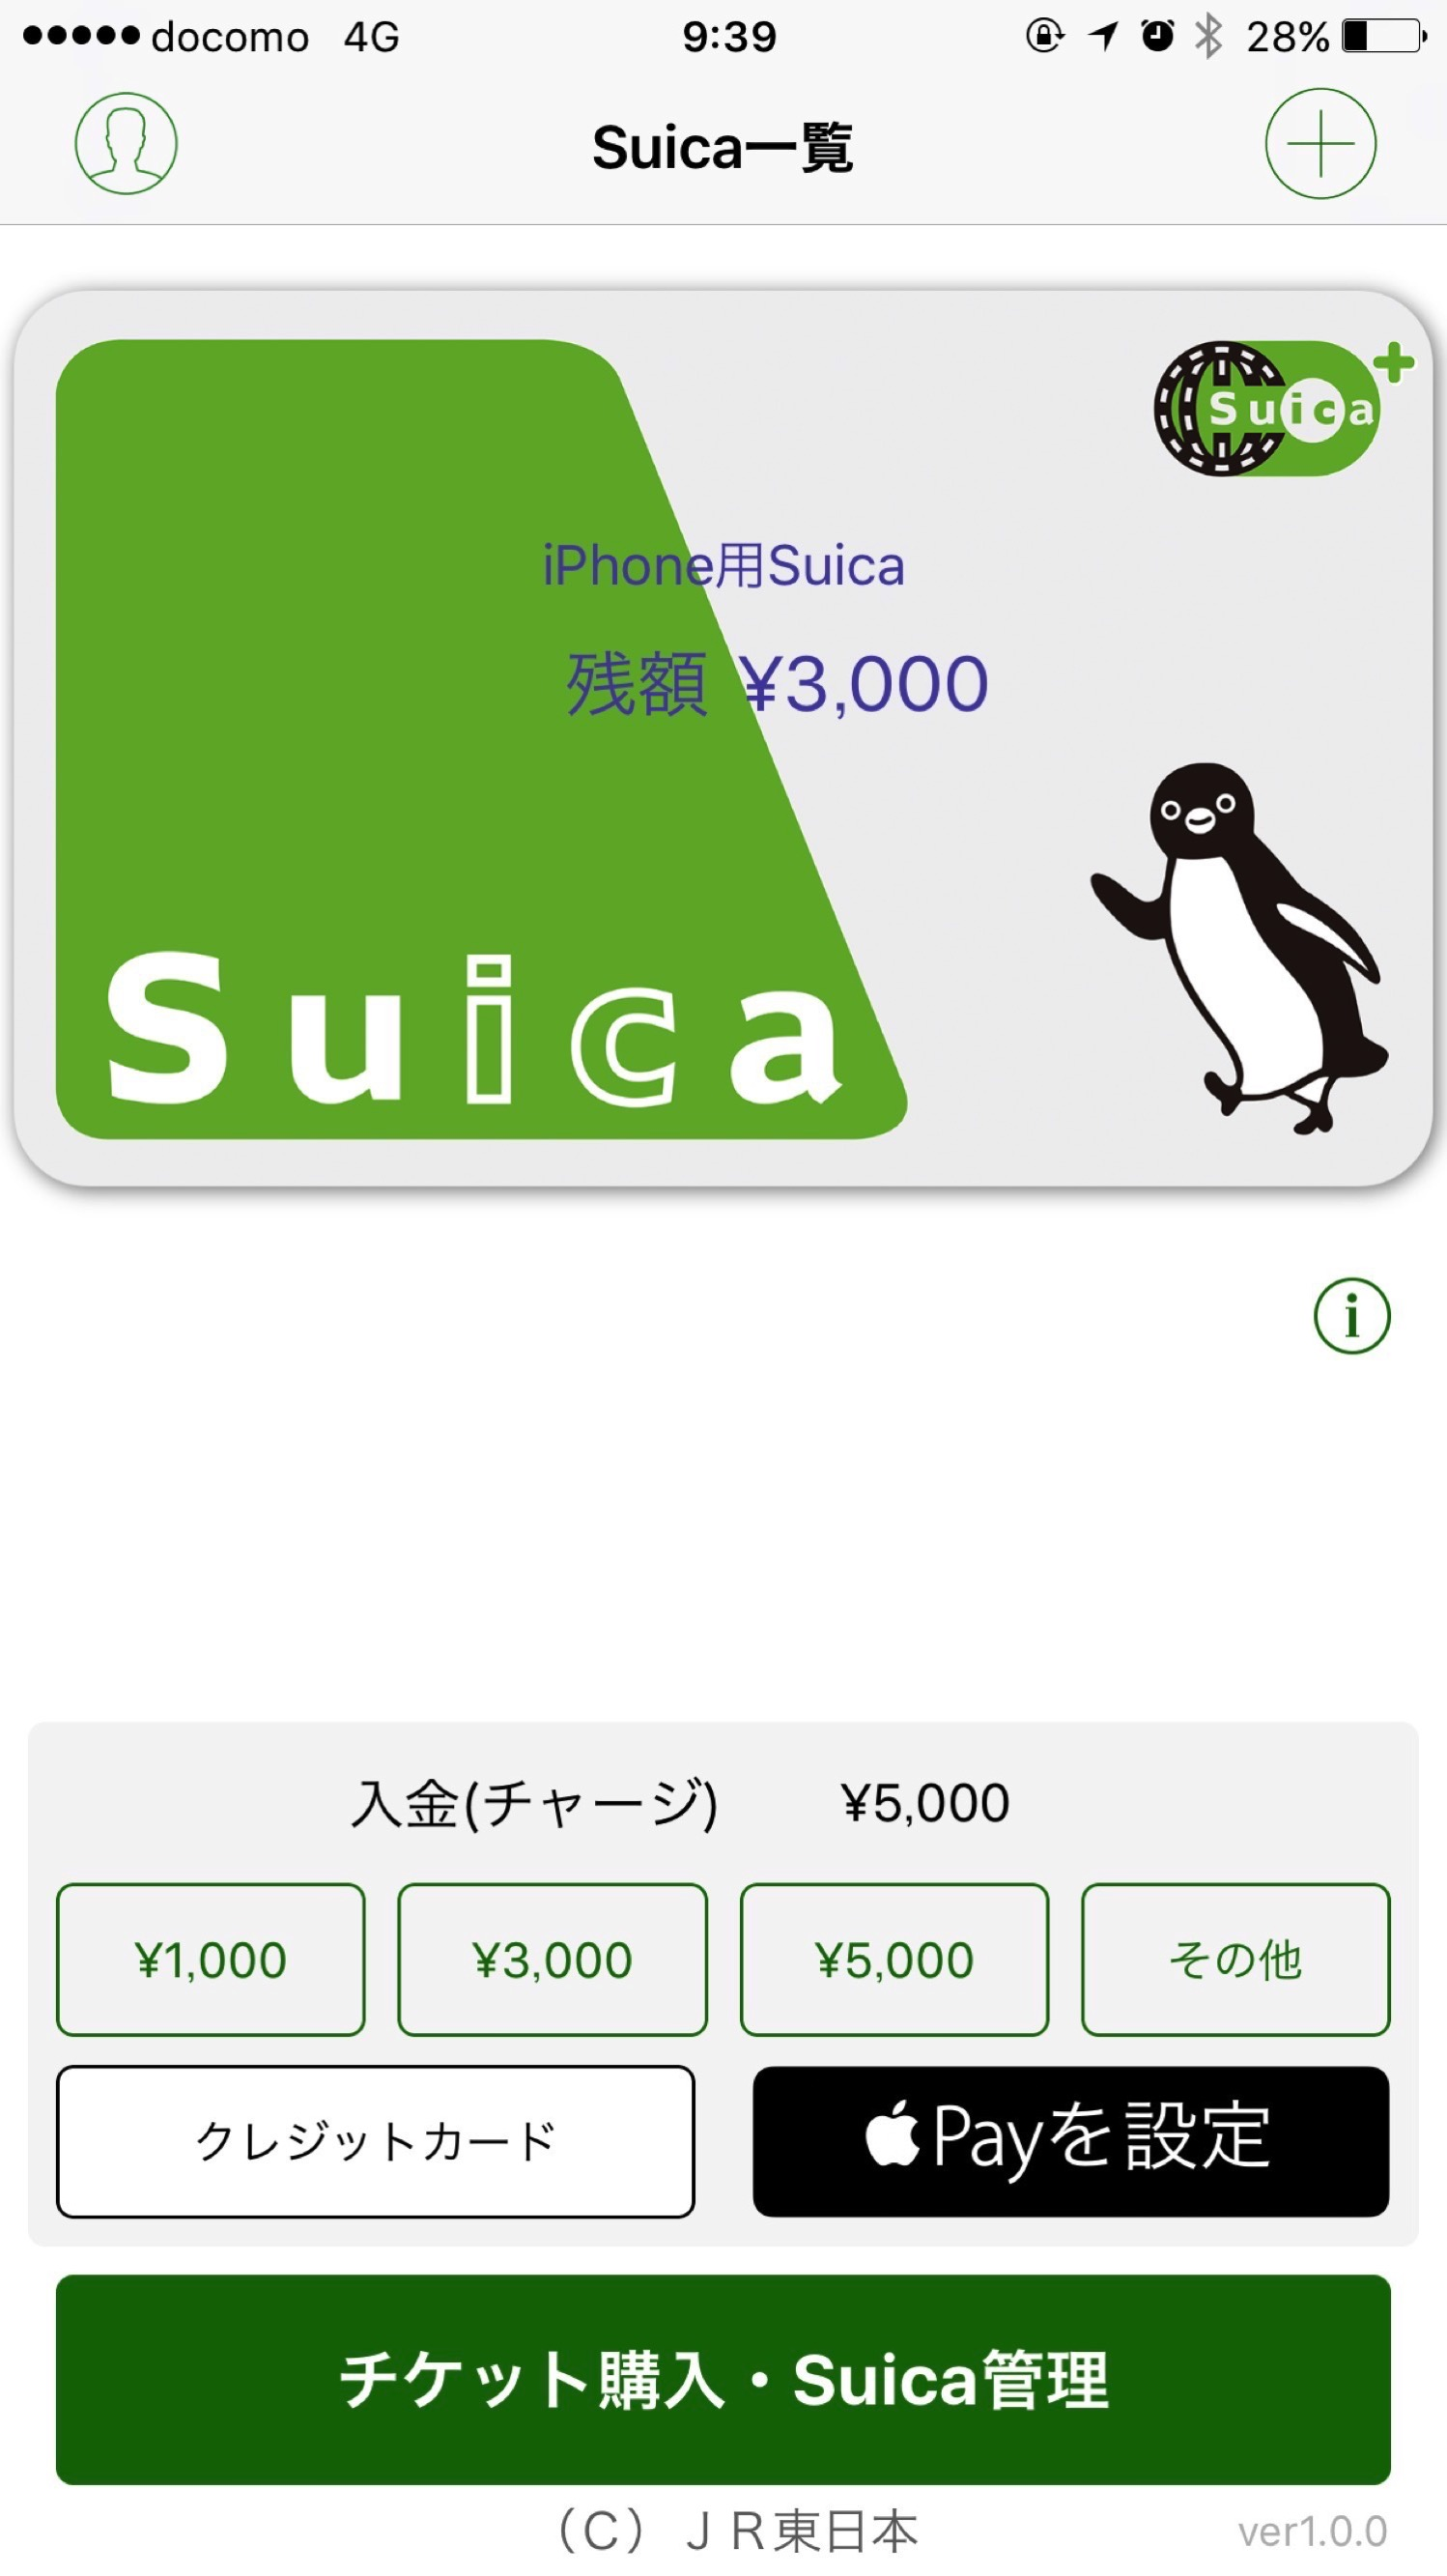 IPhone7 Suica Apple Pay 9